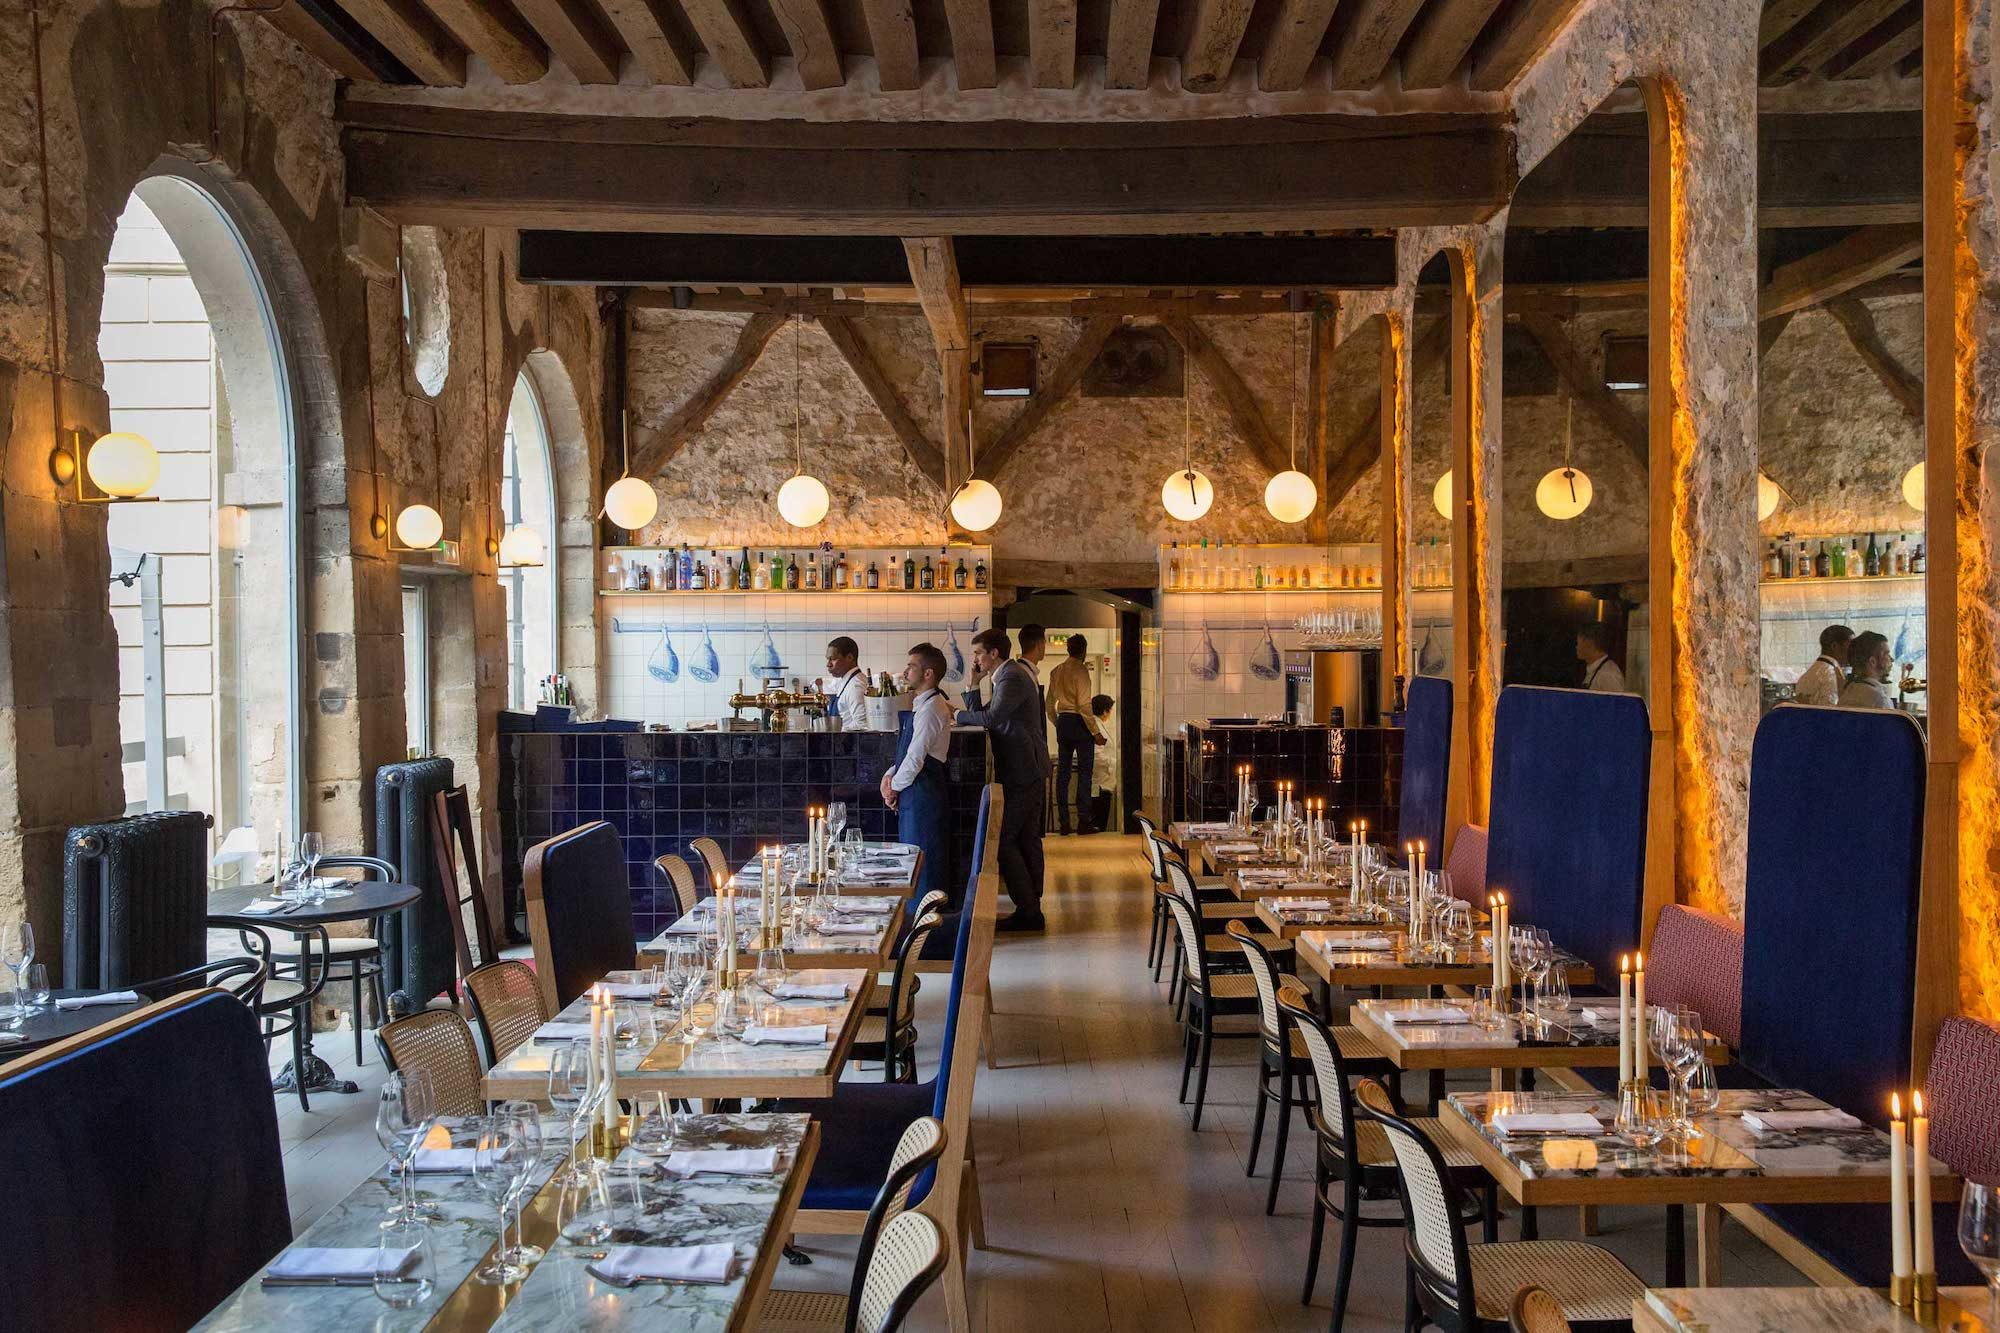 Inside Grandcoeur restaurant in Paris, which is one of the best places to sit down to a French meal.